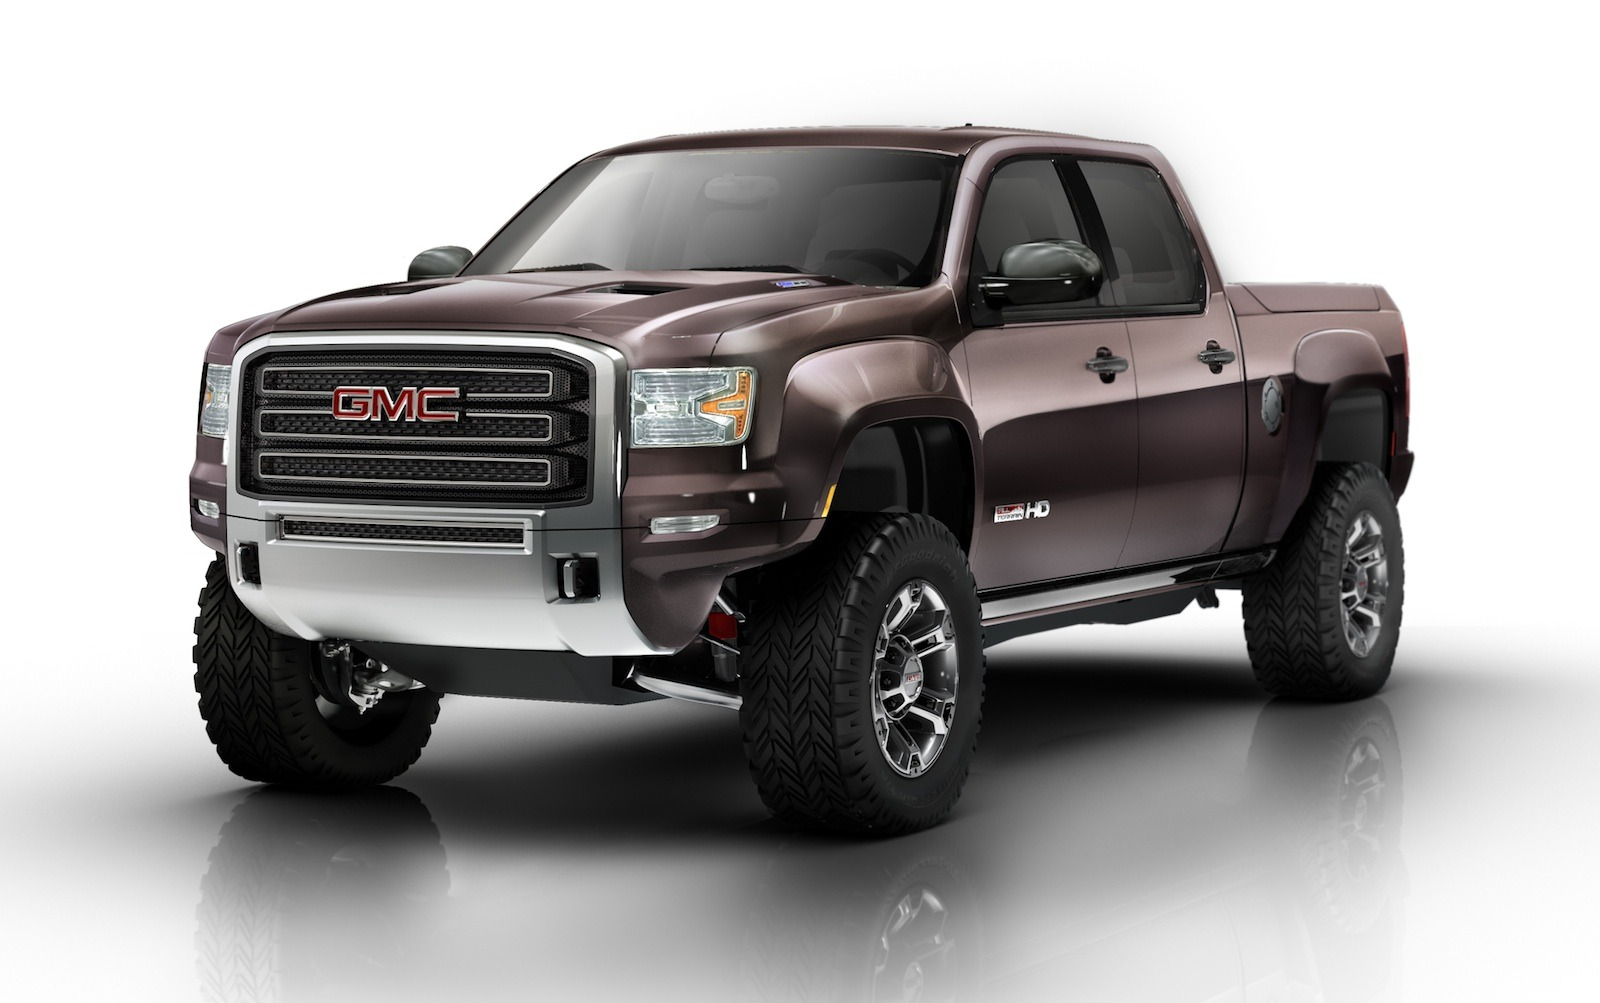 2019 Chevy Silverado 1500 Trailboss Everything Know Tires Shocks moreover Vin Docs 2019 Chevrolet Silverado Keeps Old Sibling Around Gmc as well 2018 Chevrolet Ltz Z71 besides Fuse Box Diagram For 2003 Gmc Sierra 1500 in addition Break Out Bell Bottoms Because Chevrolet Dealer Resurrected 1970s Cheyenne Super 10. on 2019 gmc sierra for sale